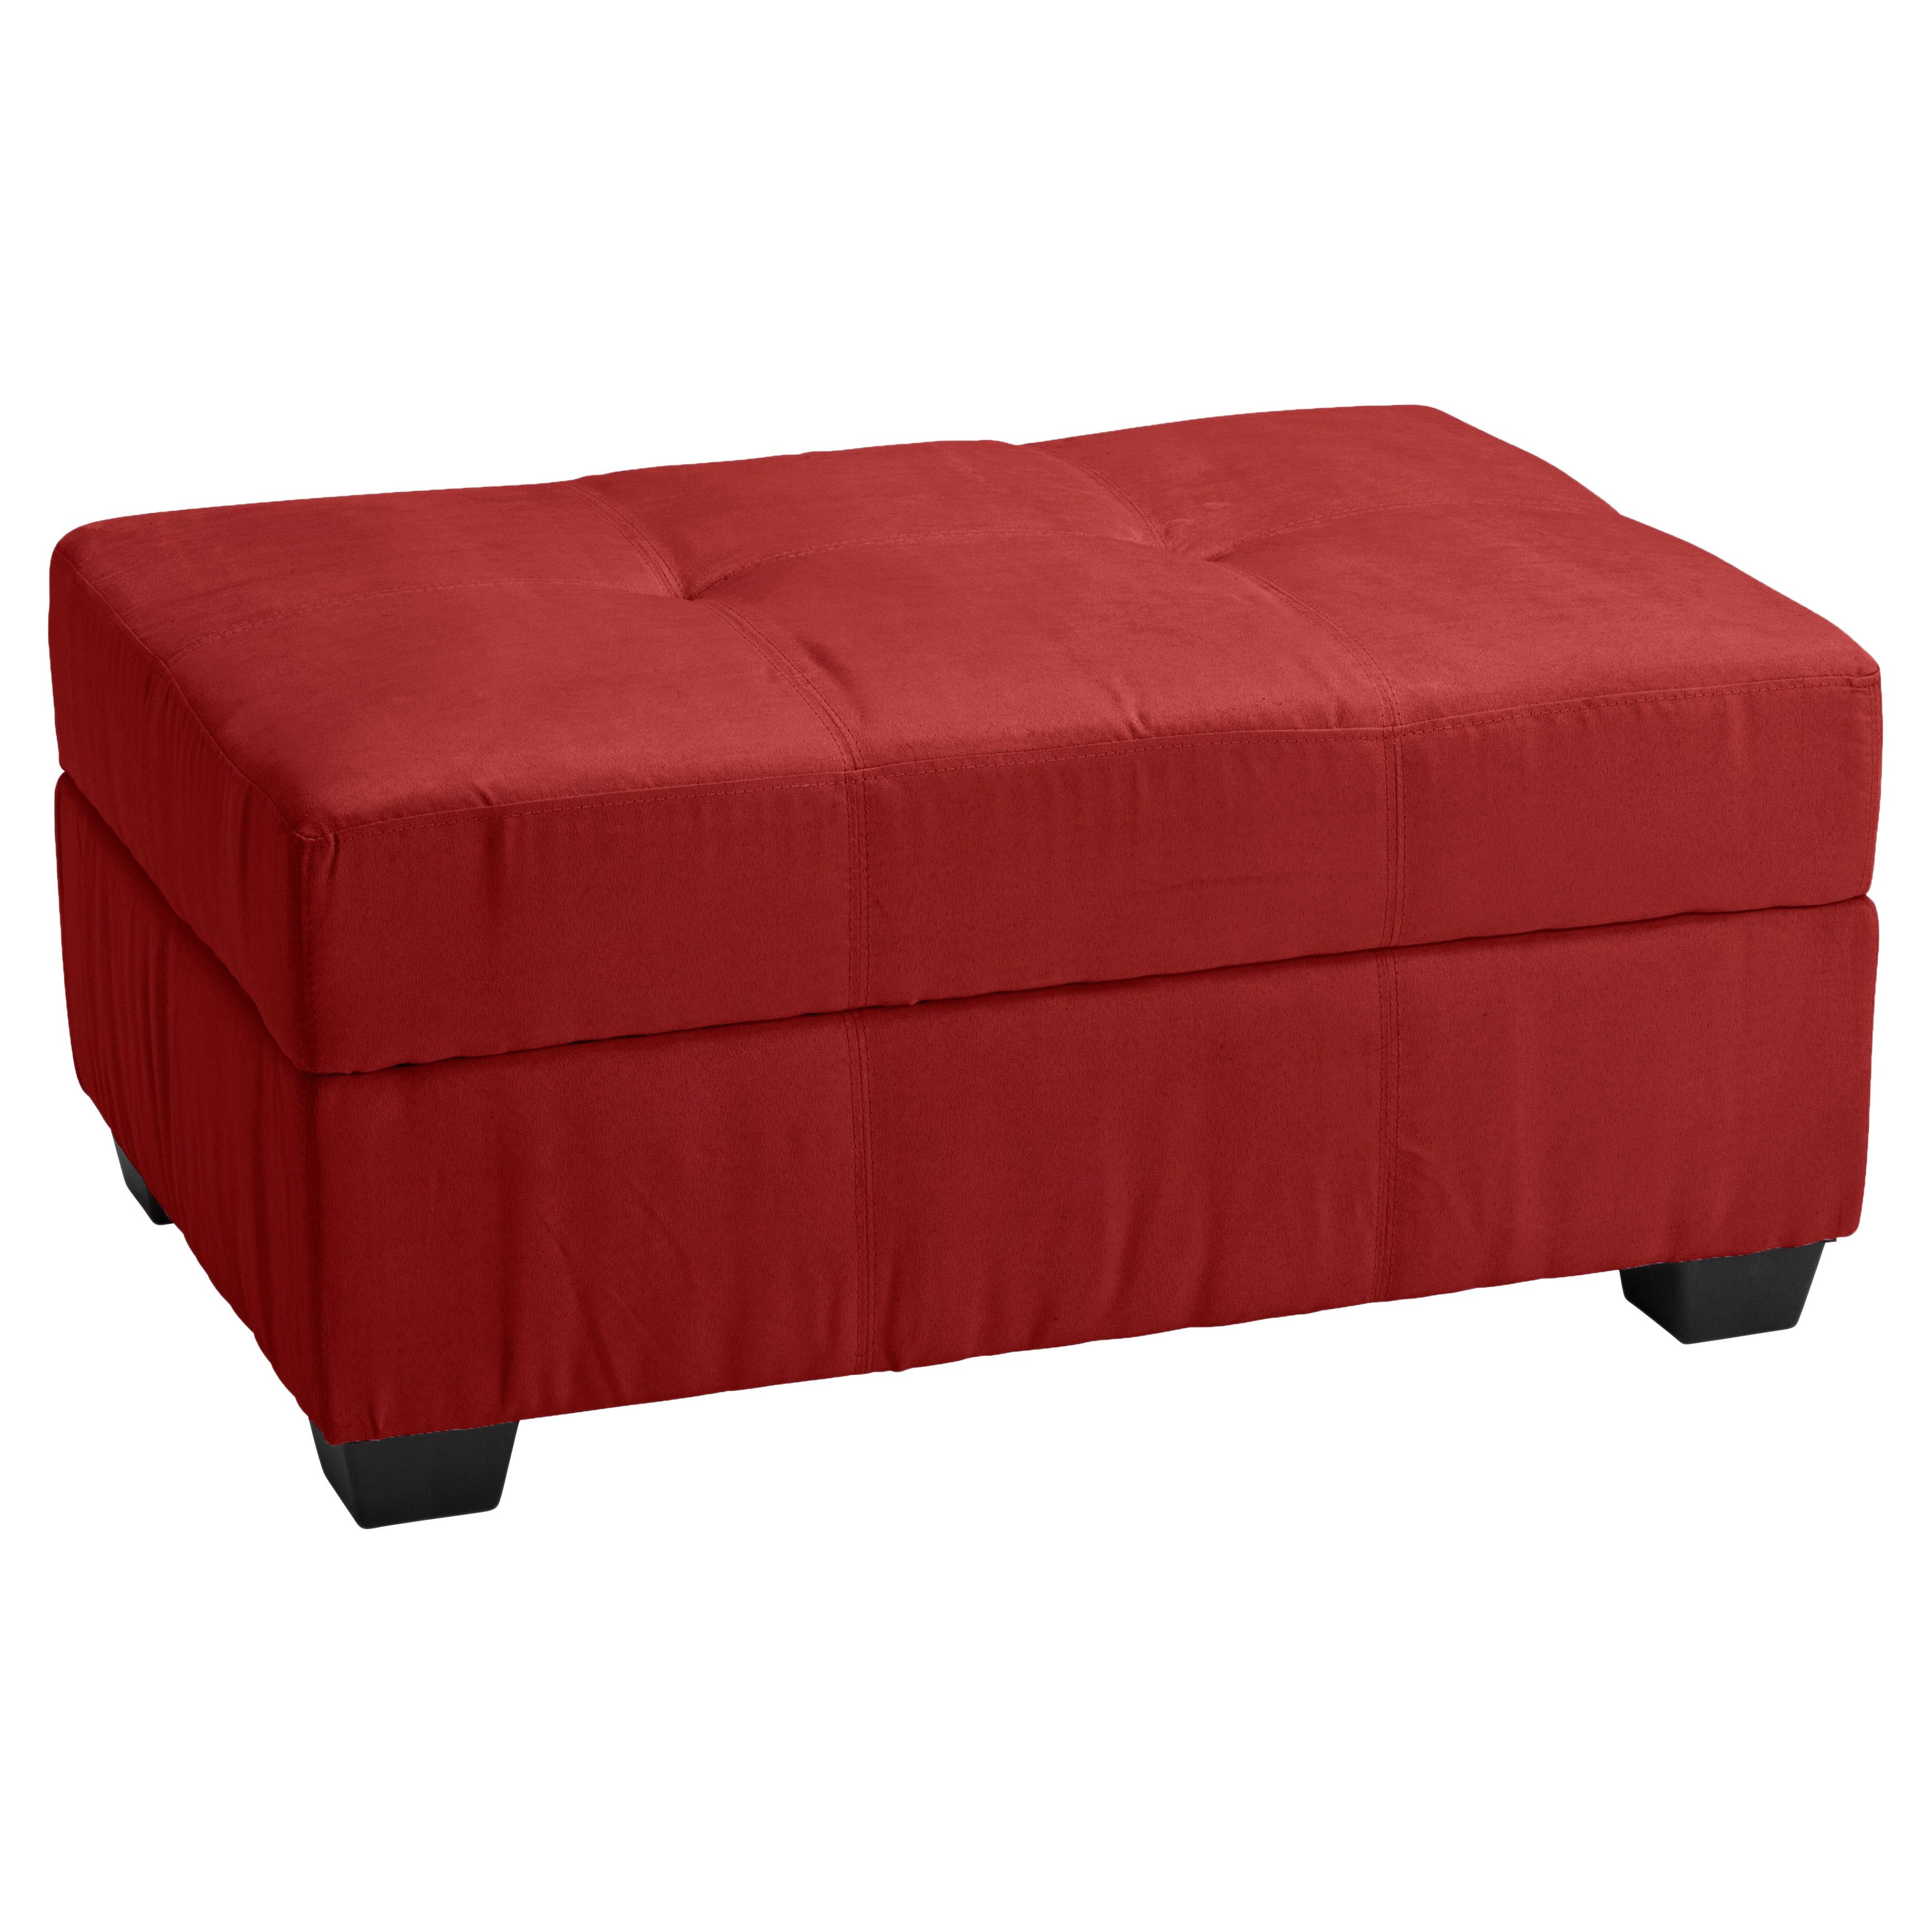 Groovy Malad Hinged Storage Ottoman Bench Alphanode Cool Chair Designs And Ideas Alphanodeonline